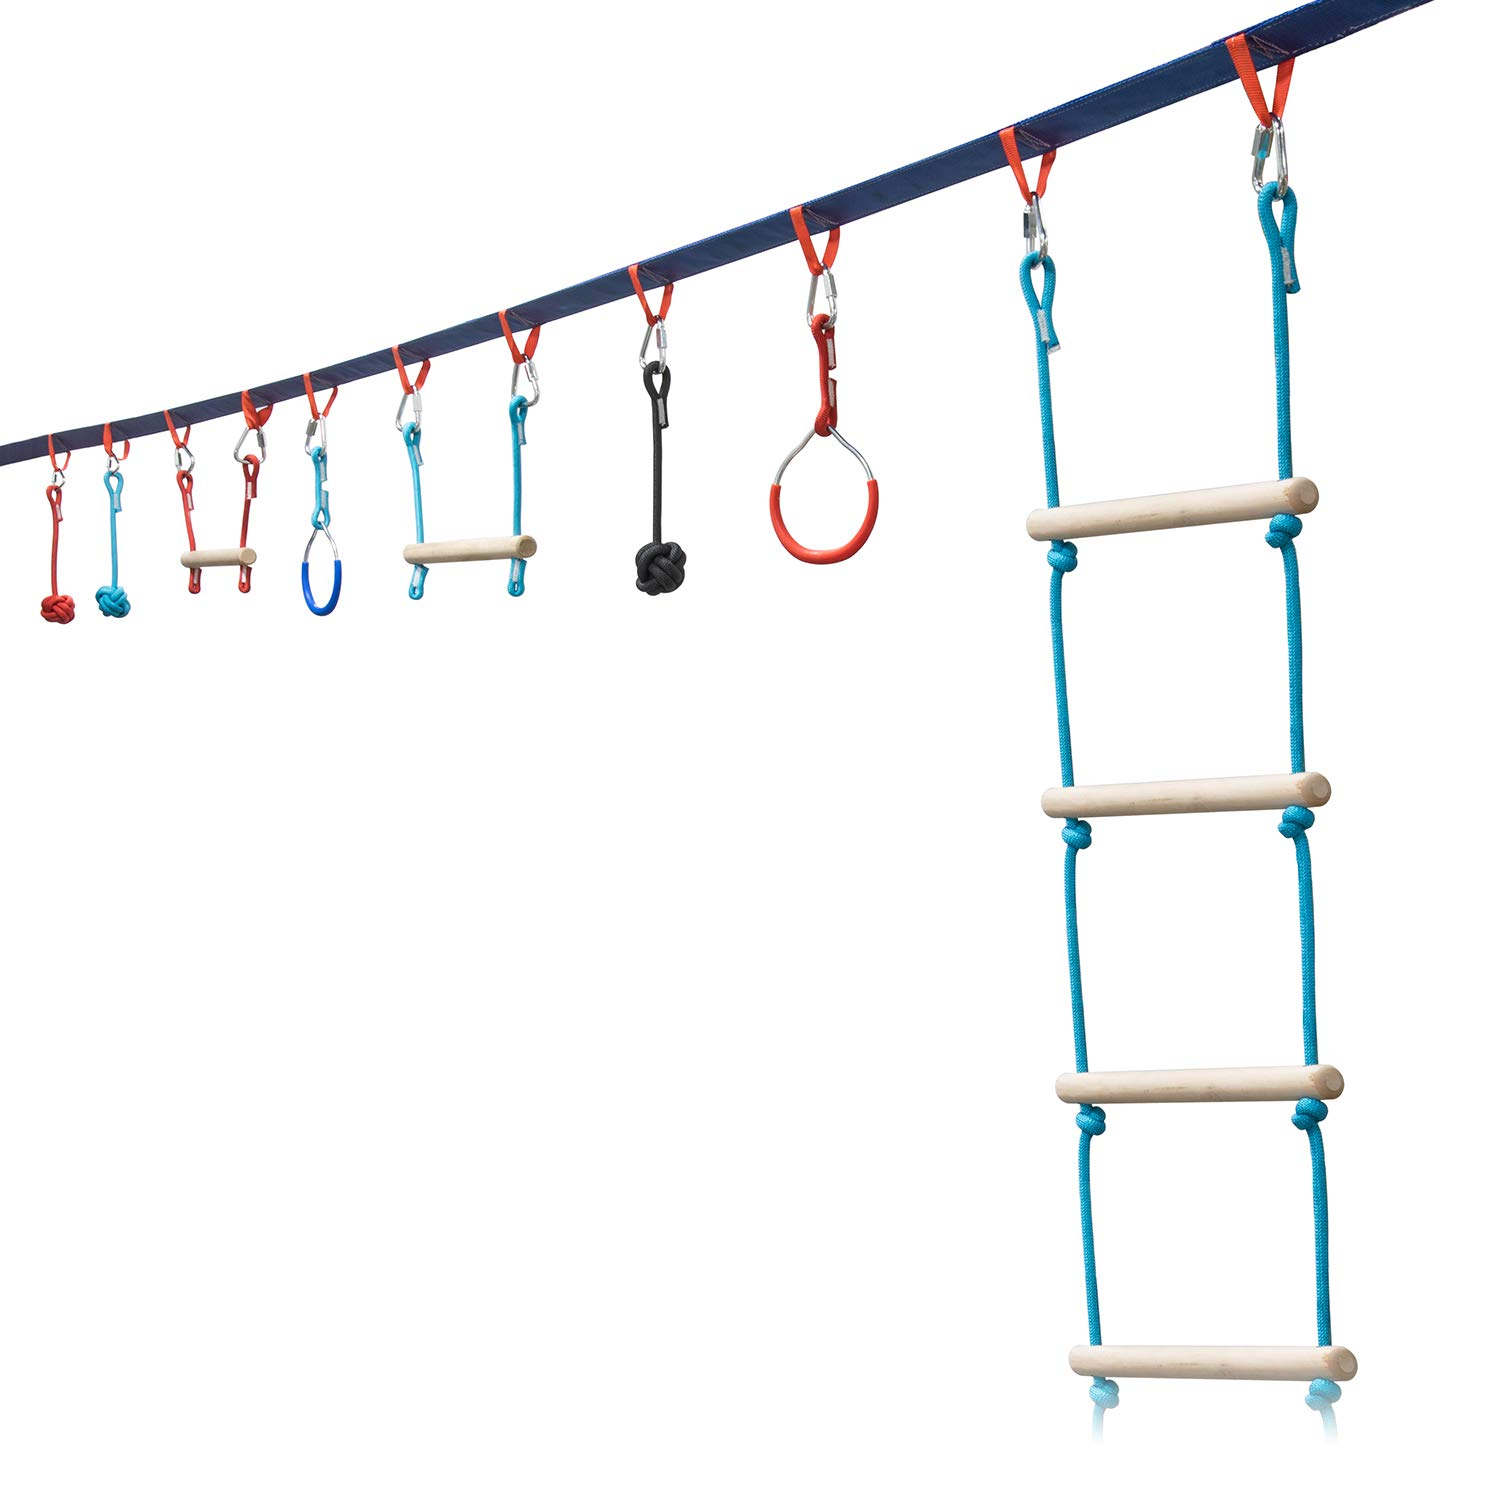 Sunny & Fun Portable 50 Foot Slackline Monkey Bar and Ladder Kit - Kids Swinging Obstacle Course Set - Bars, Fists, Gymnastics Rings - 250lb Capacity - Storage Bag & Tree Protectors Included by Sunny & Fun